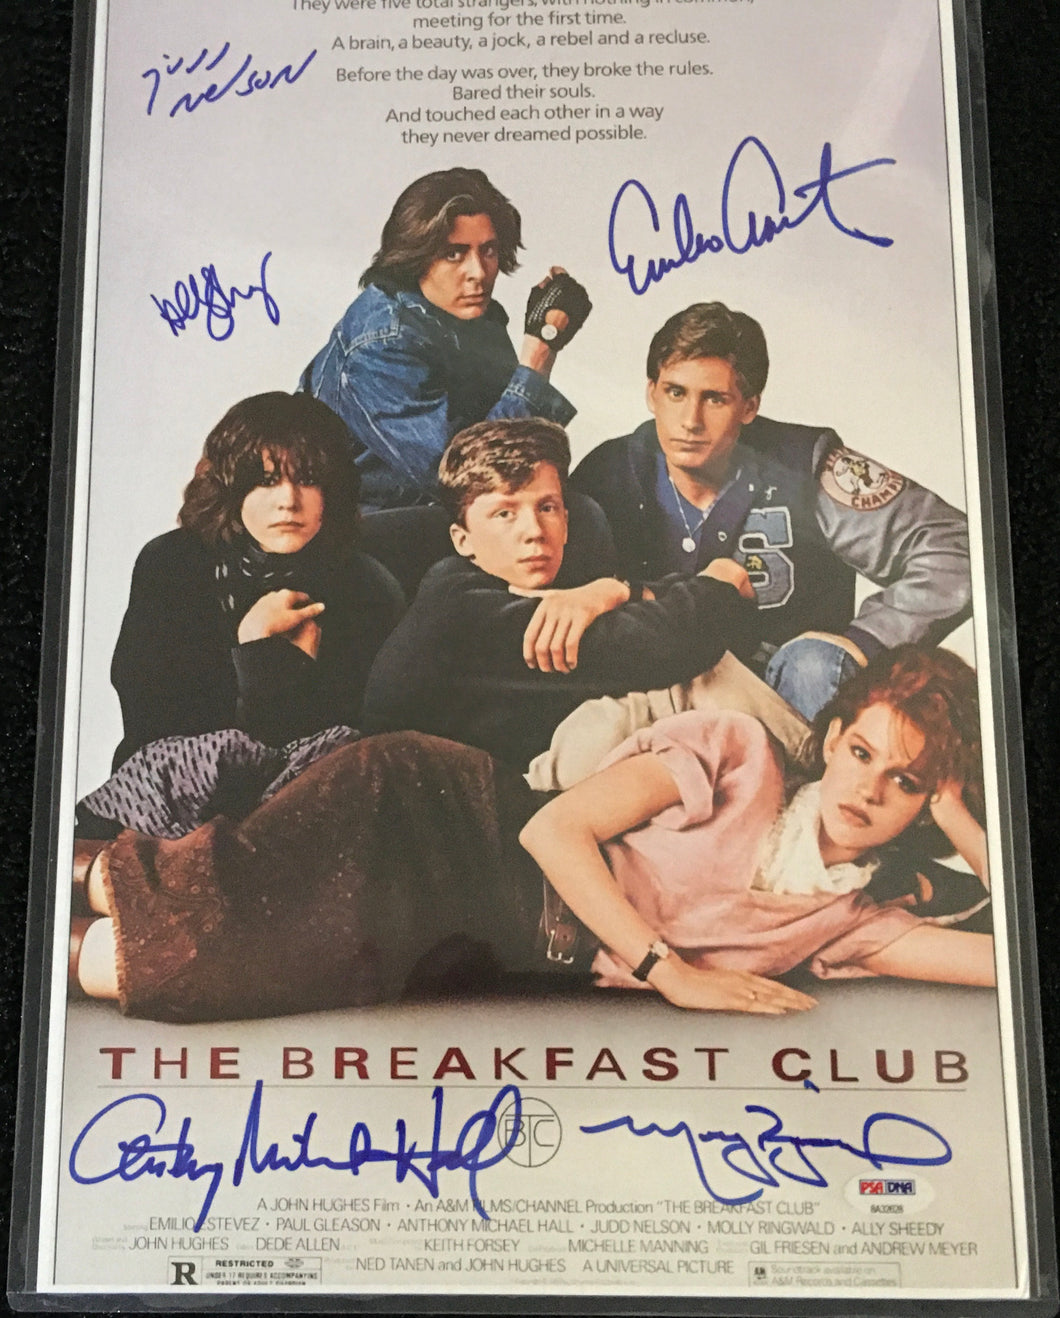 The Breakfast Club Cast Signed Poster